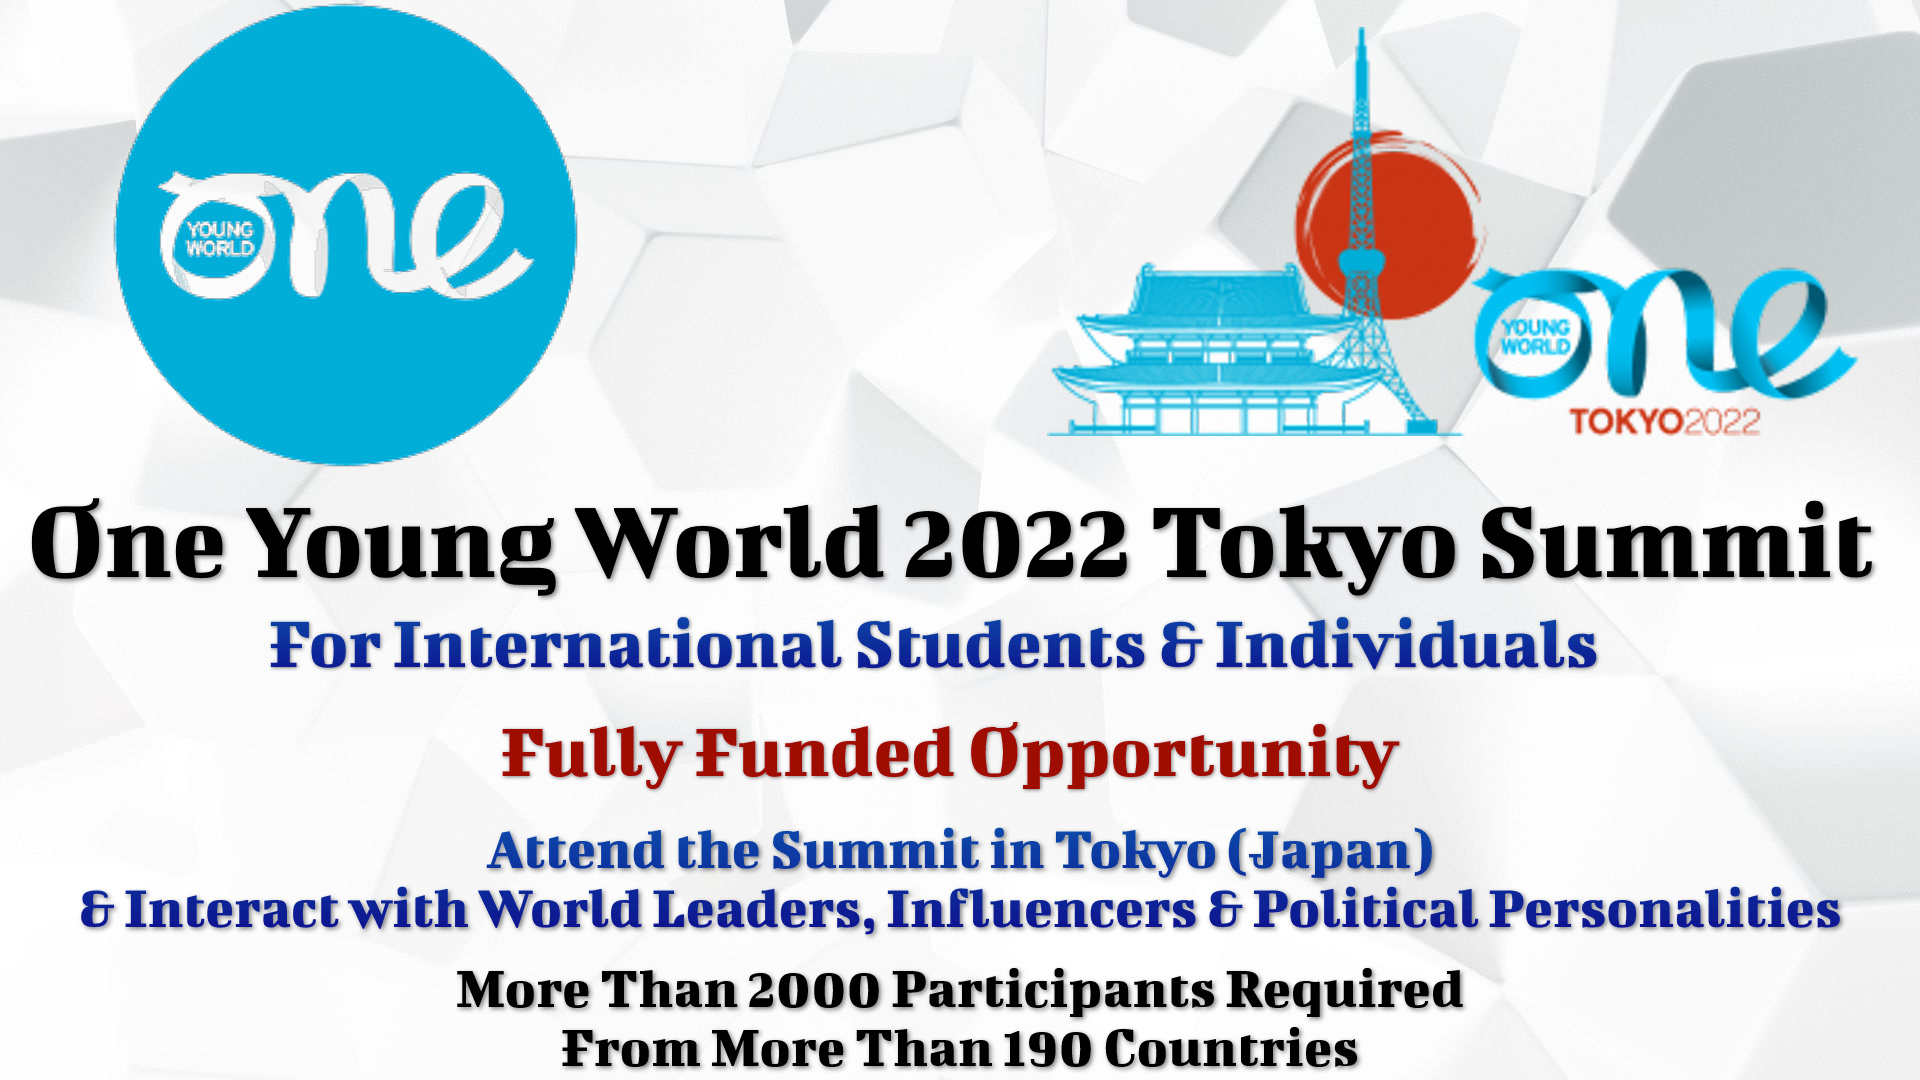 One Young World 2022 Tokyo Summit